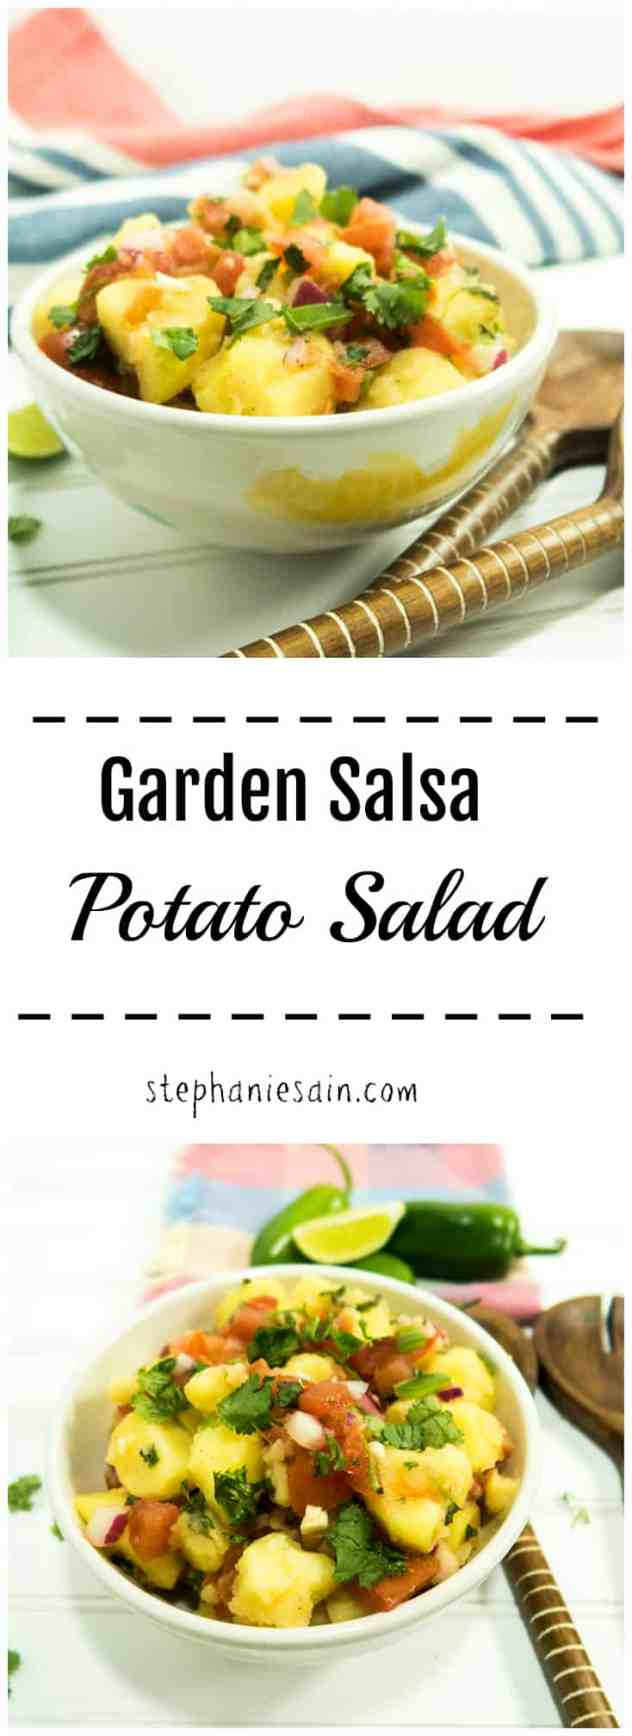 Garden Salsa Potato Salad is super easy to prepare, flavorful and great for all your summertime gatherings! Potatoes and salsa combined in a tasty salad that is both Vegan & Gluten Free.